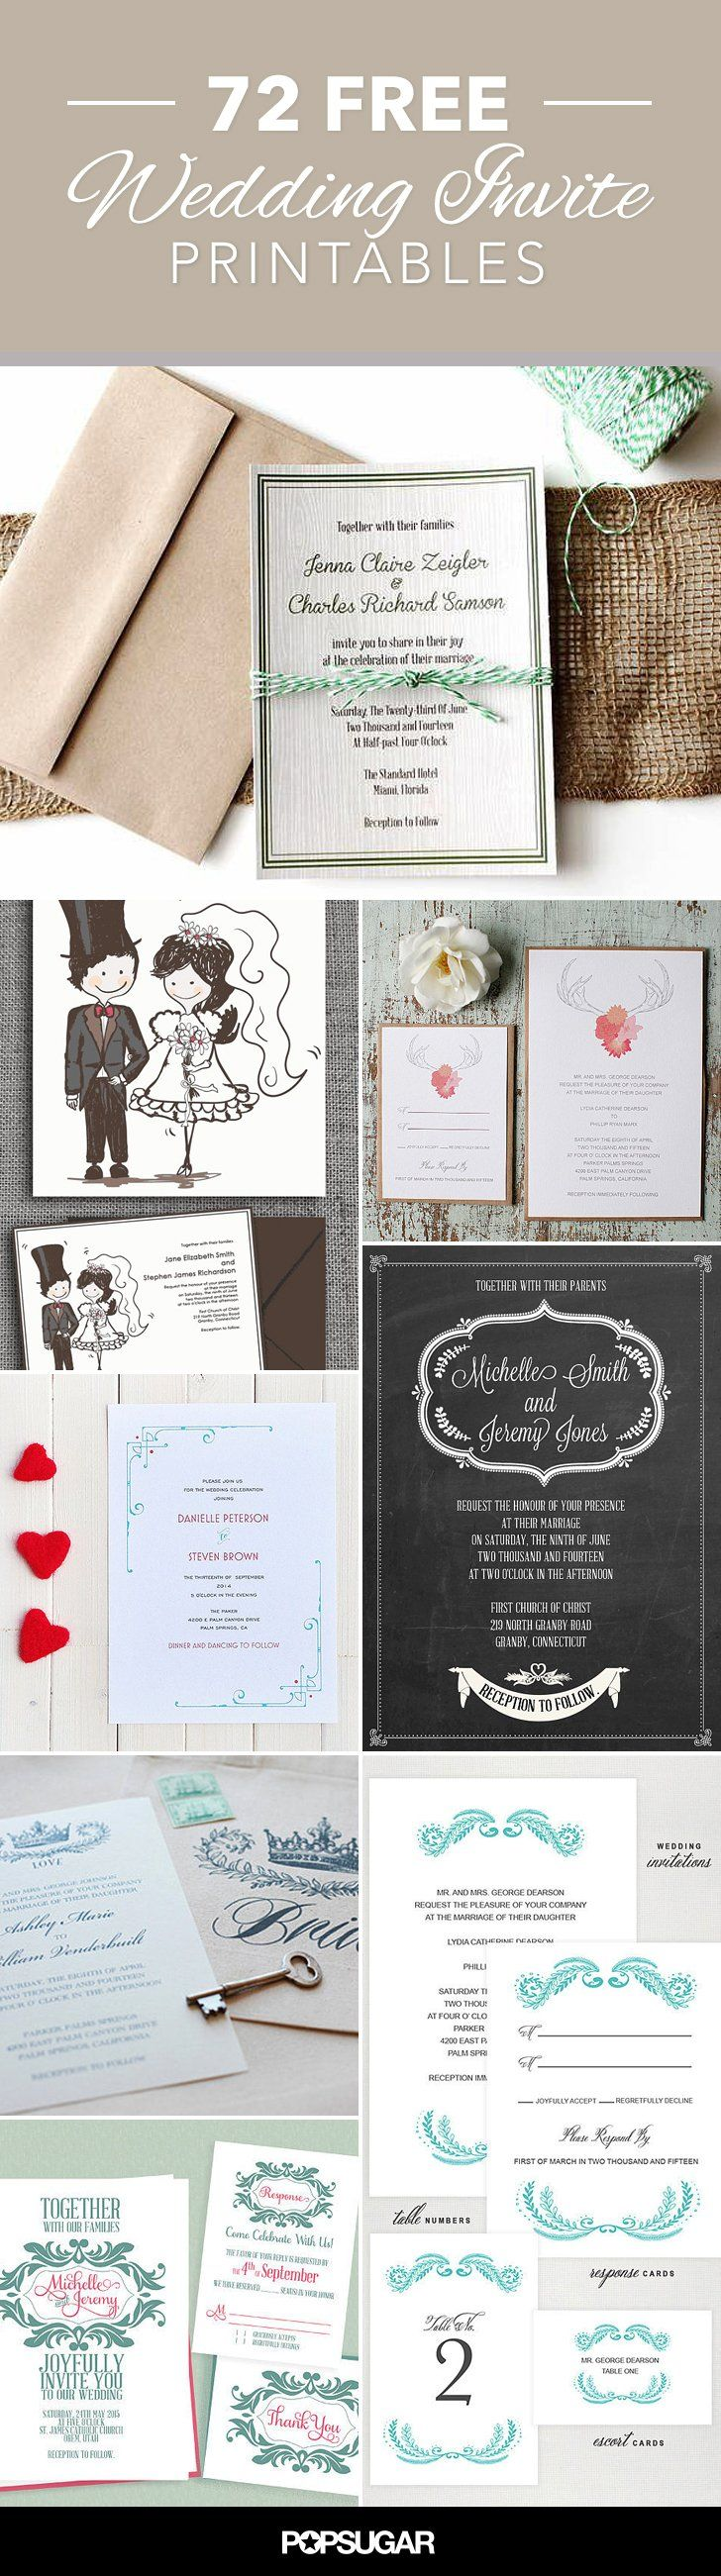 wedding cards with price in chennai%0A    Beautiful WeddingInvite Printables to Download For Free